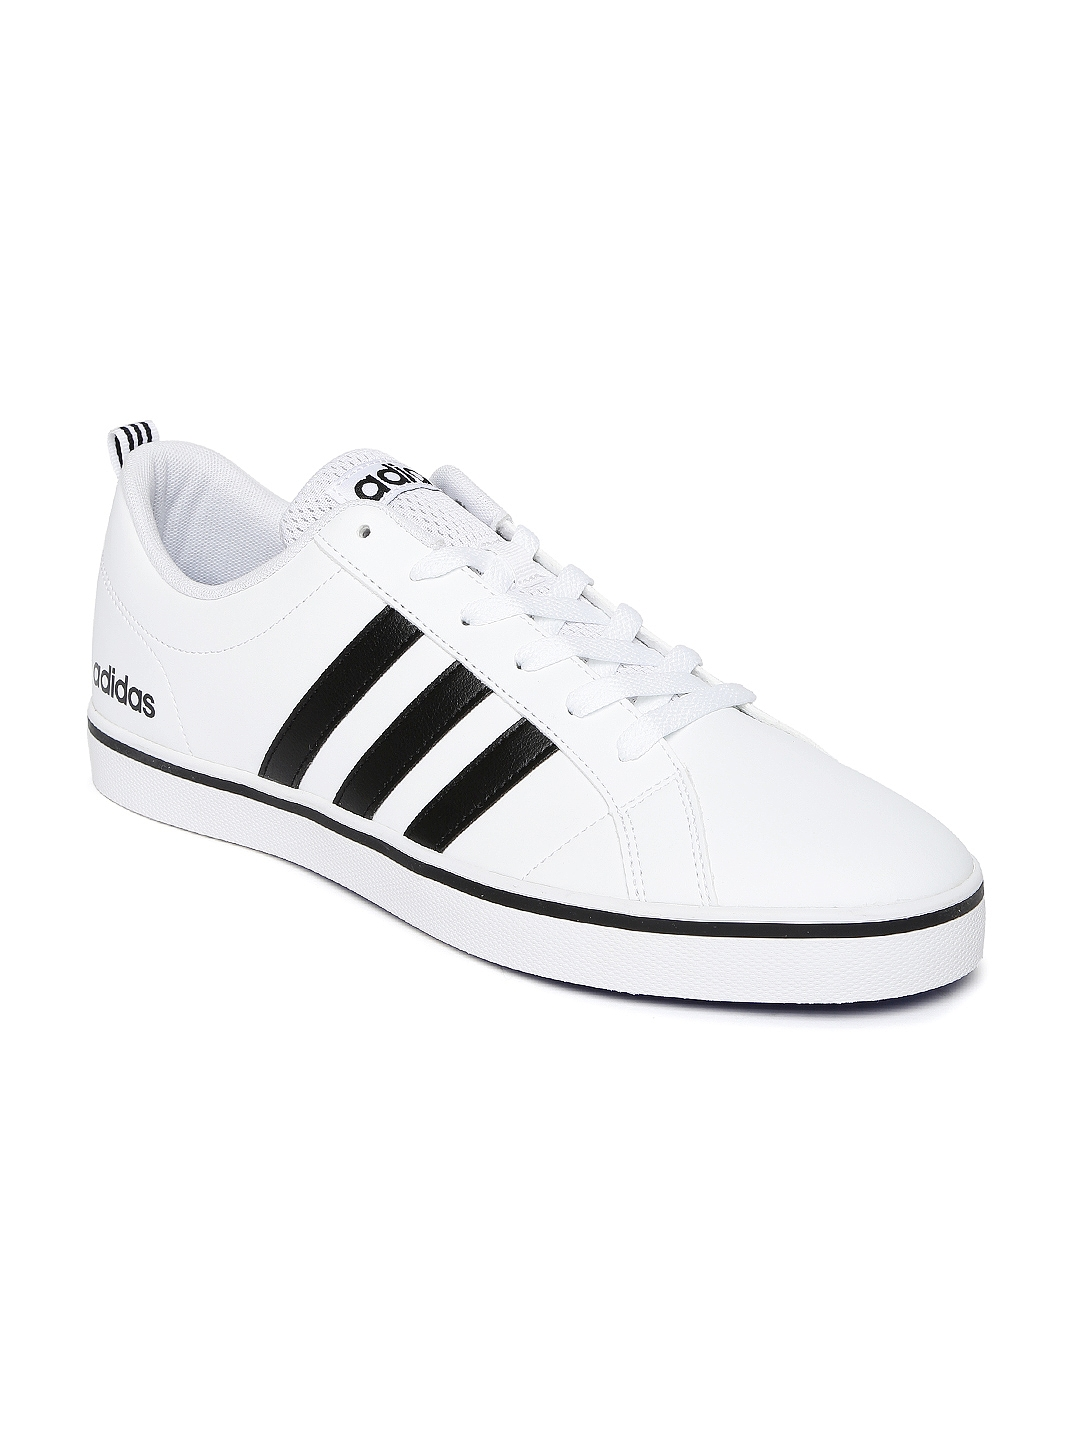 b2698060eacbd8 Buy ADIDAS NEO Men White Solid Pace VS Sneakers - Casual Shoes for Men  1668467